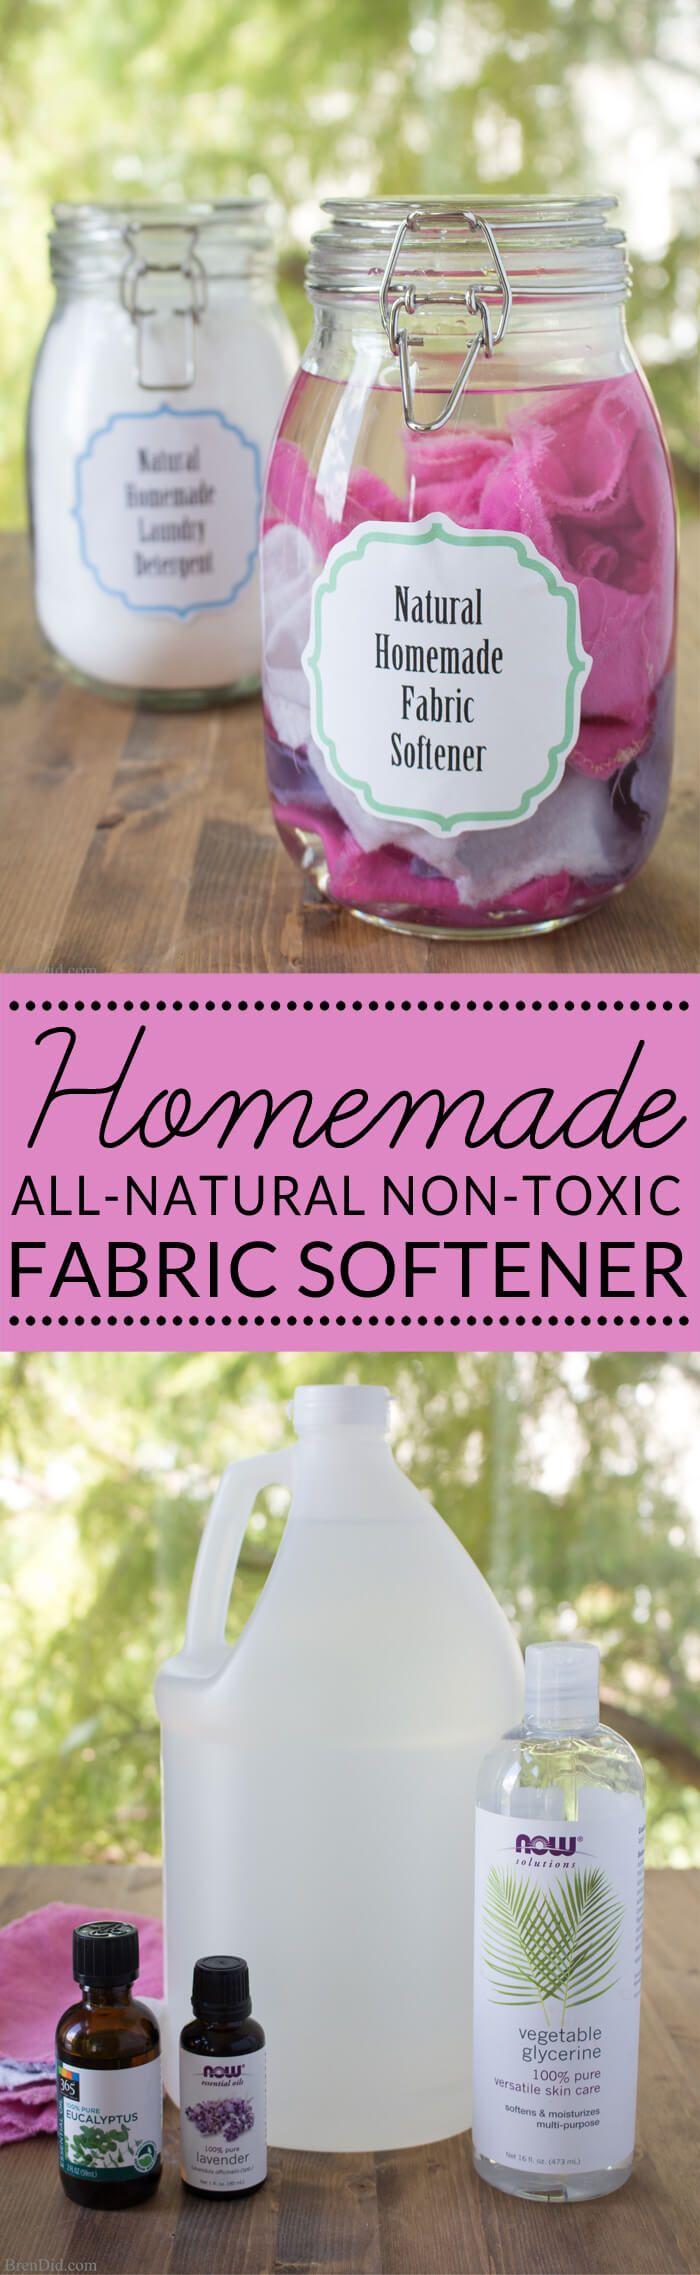 homemade fabric softener | all natural fabric softener | green cleaning and laundry | non-toxic fabric softener - Learn how to make homemade fabric softener dryer sheets.  via @brendidblog